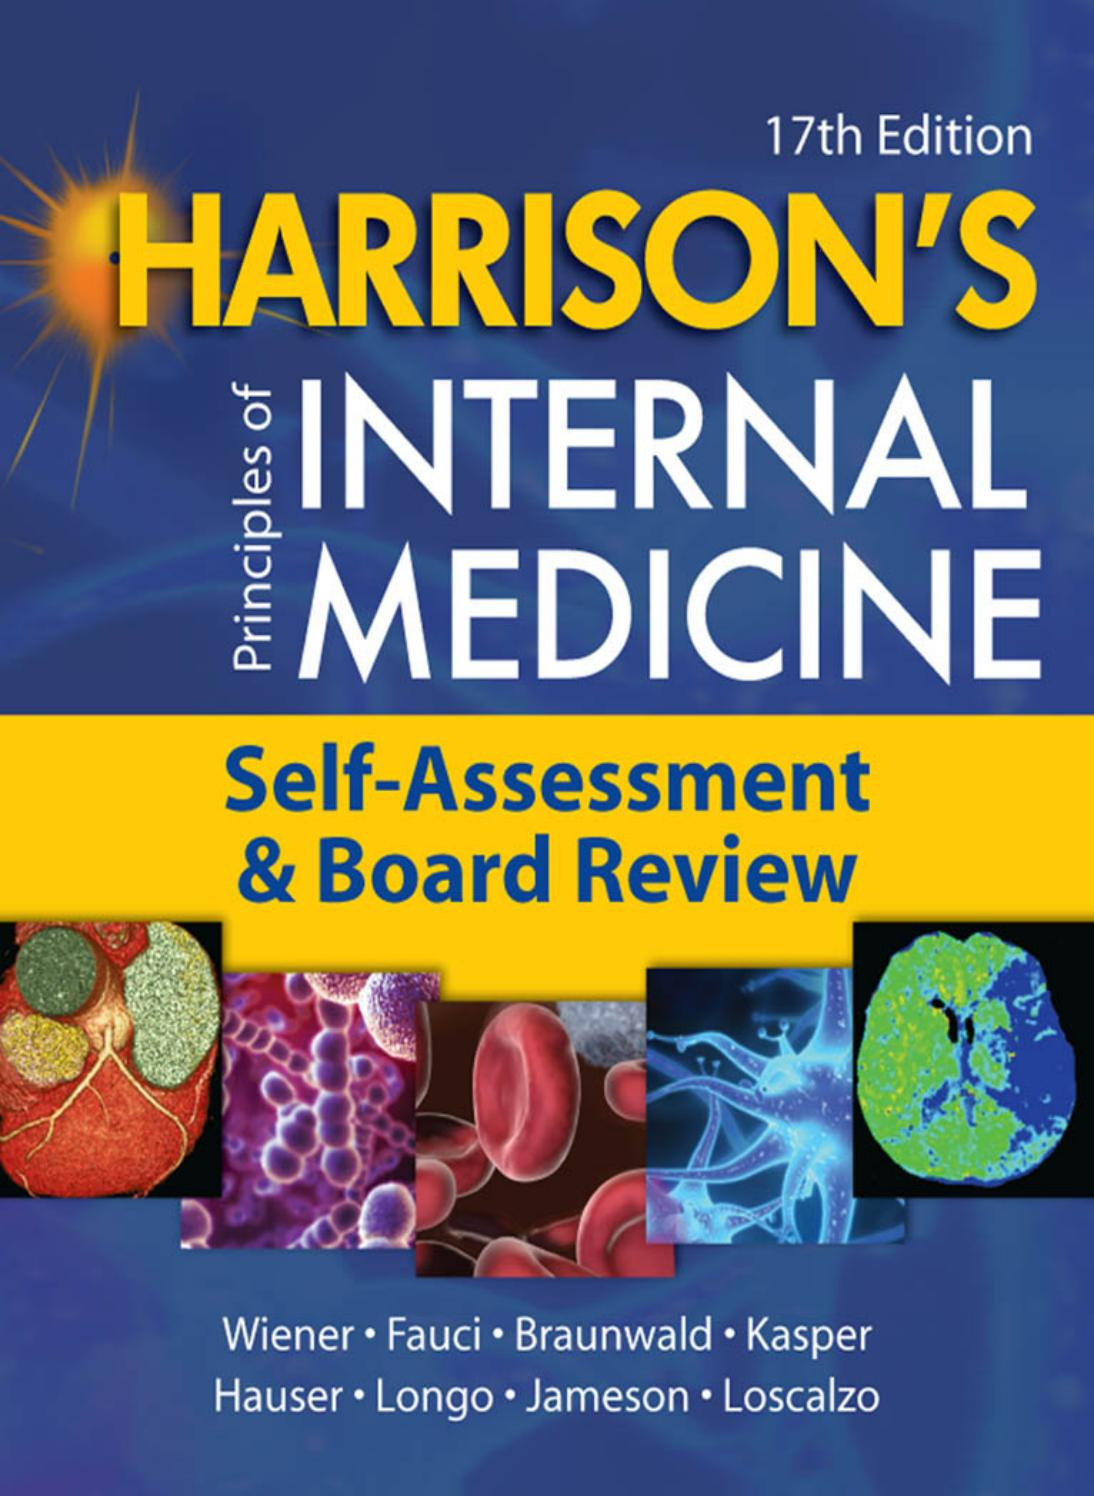 Harrisons 17th Edition Principals Of Internal Medicine By Xavier Snap Circuits 300 Project Kit Shop Atjm Cremps Adventure Store University School Issuu